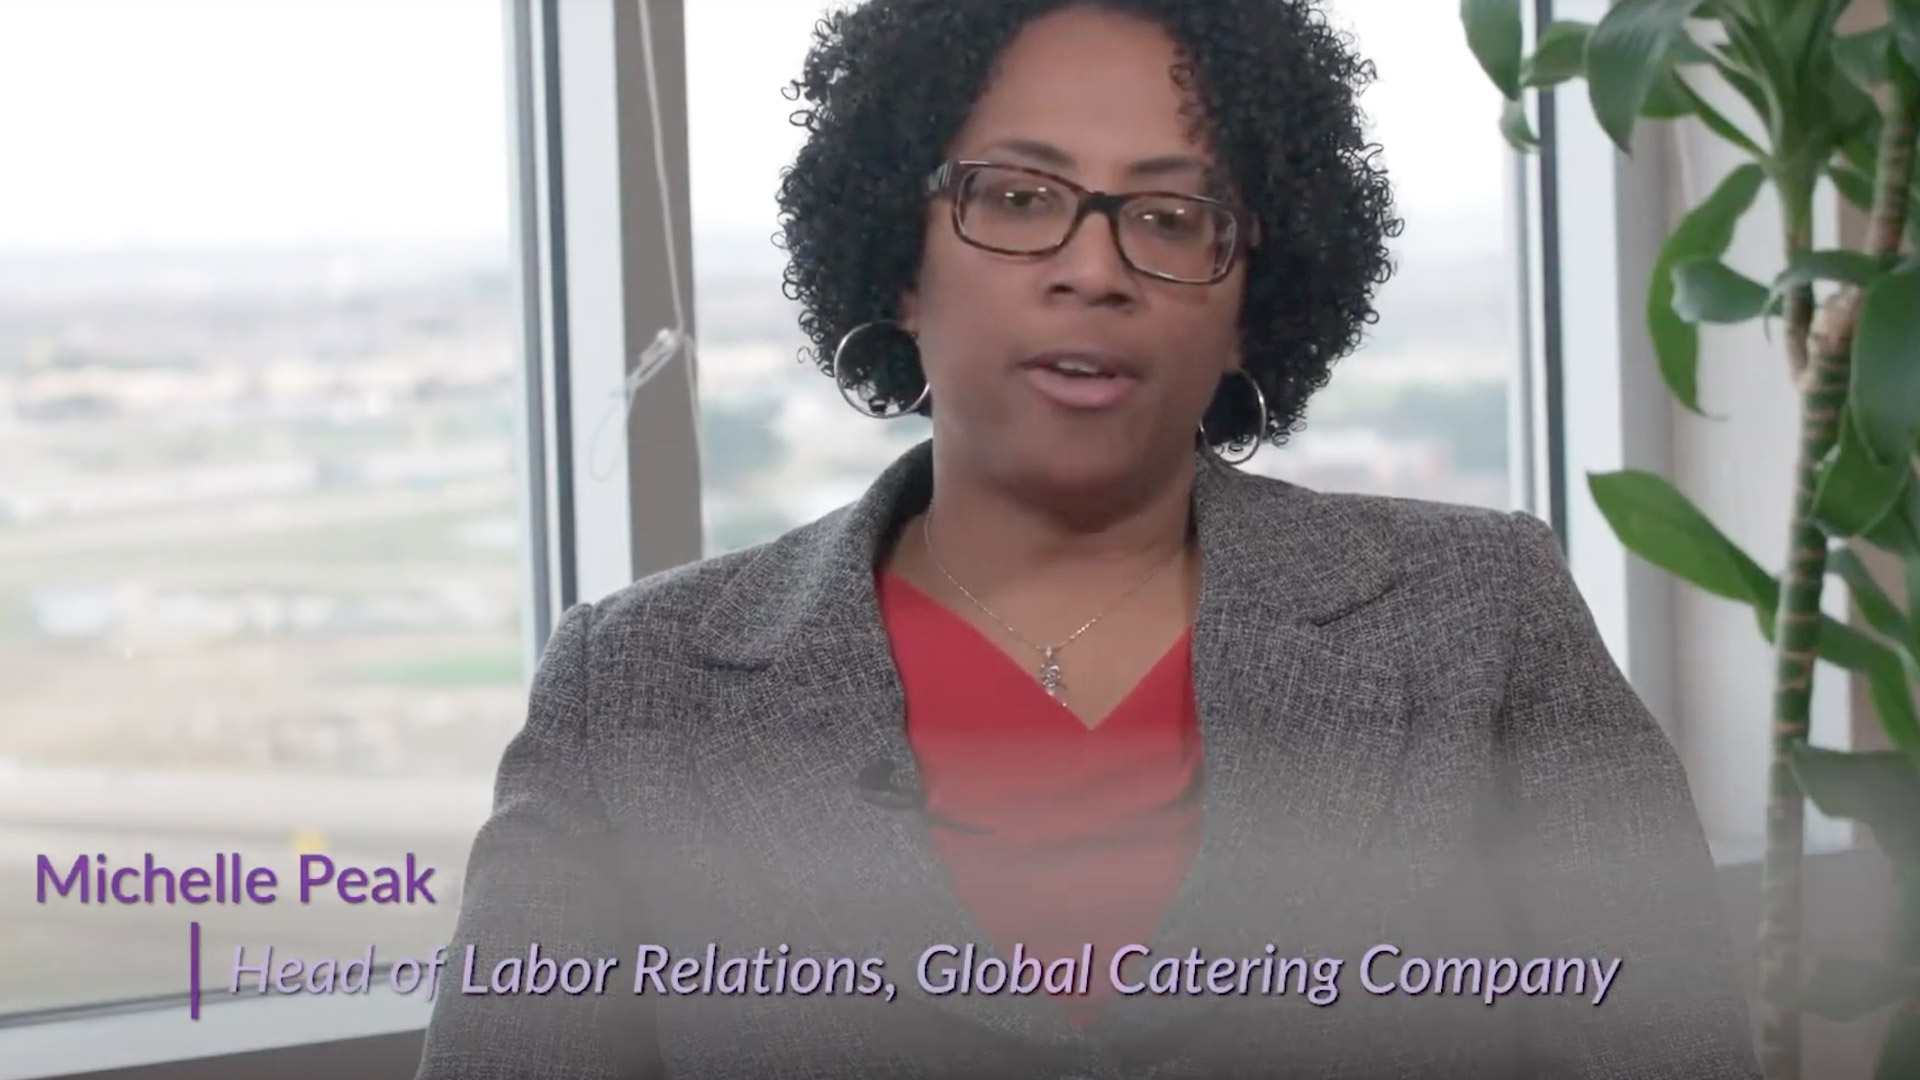 Michelle Peak on Diversity, Equity and Inclusion and the Lavender Law 365® Program